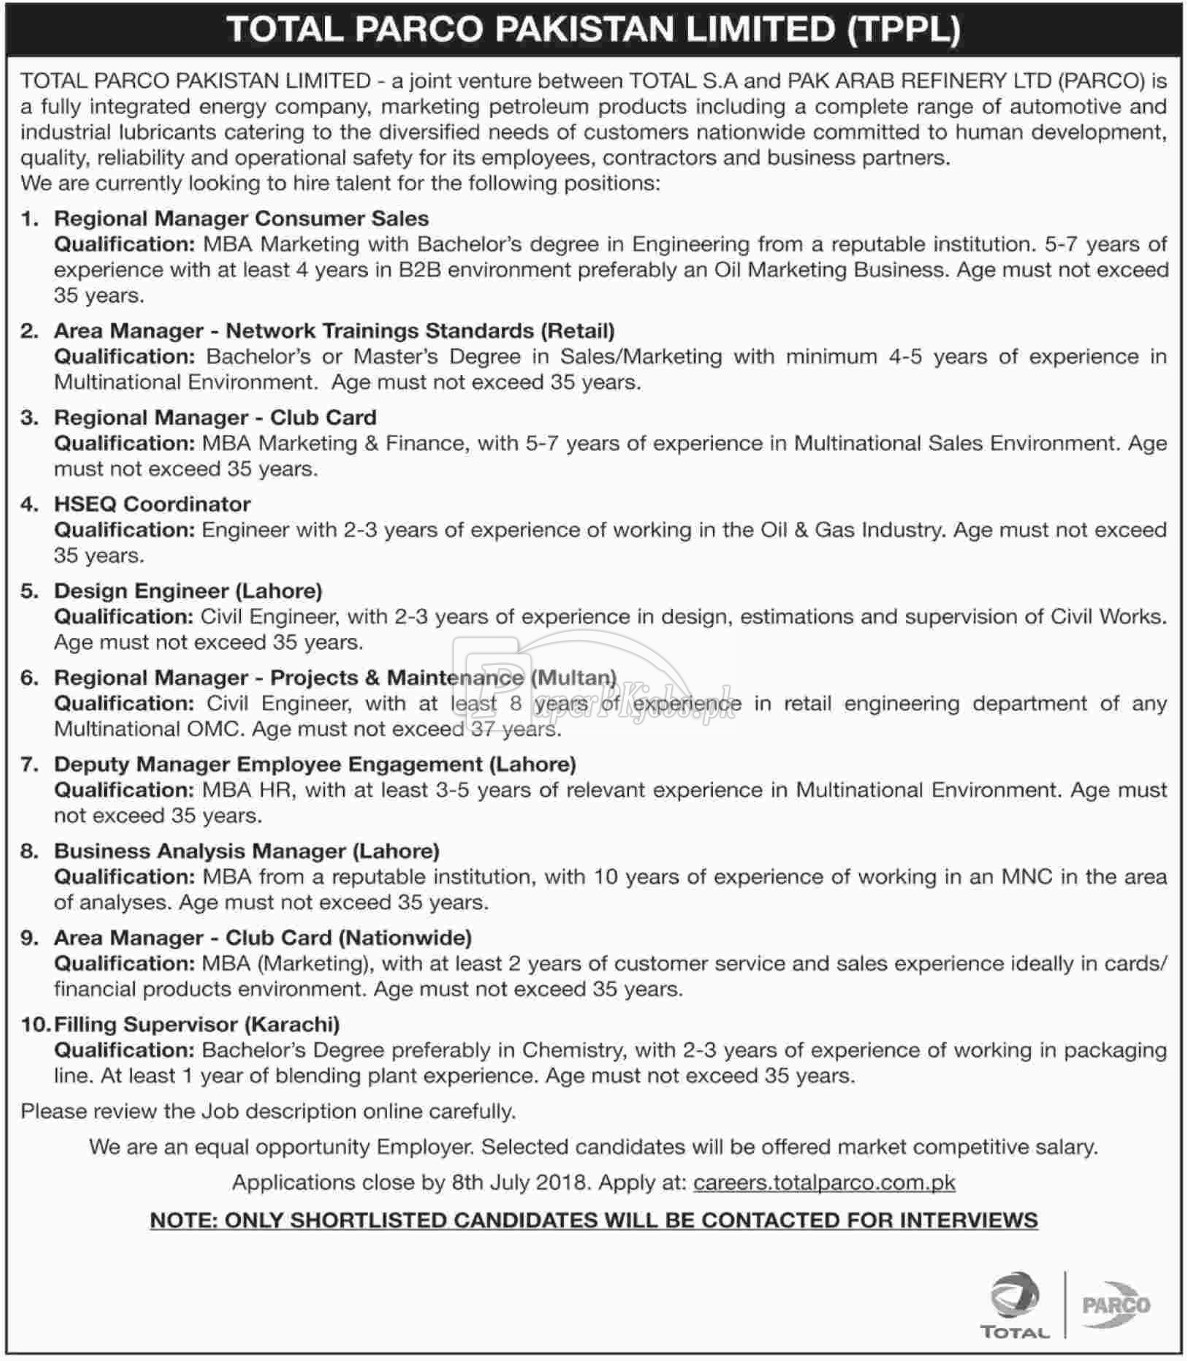 Total Parco Pakistan Ltd TPPL Jobs 2018